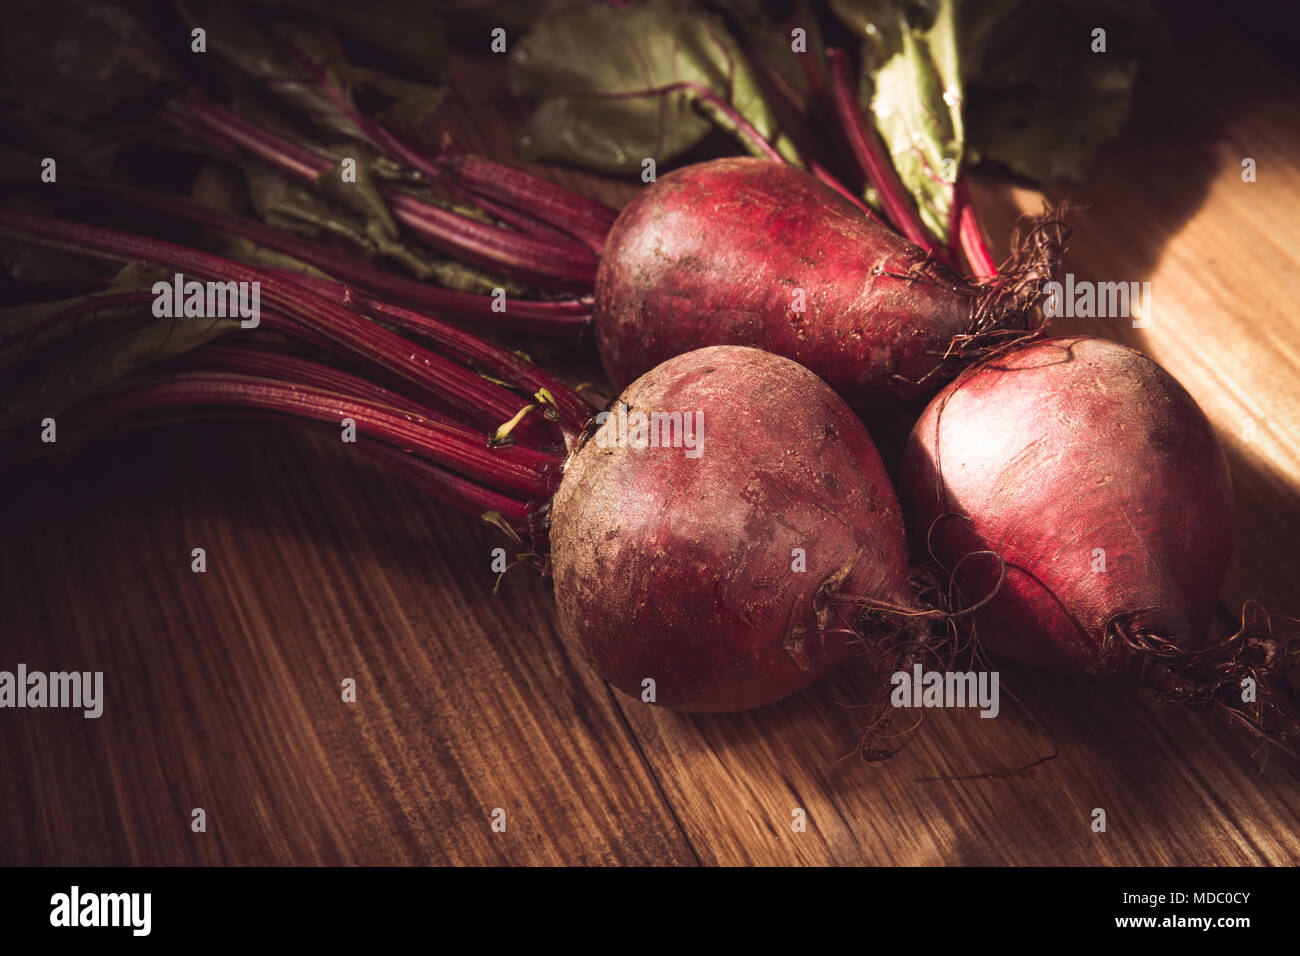 Young beets on wooden table - Stock Image